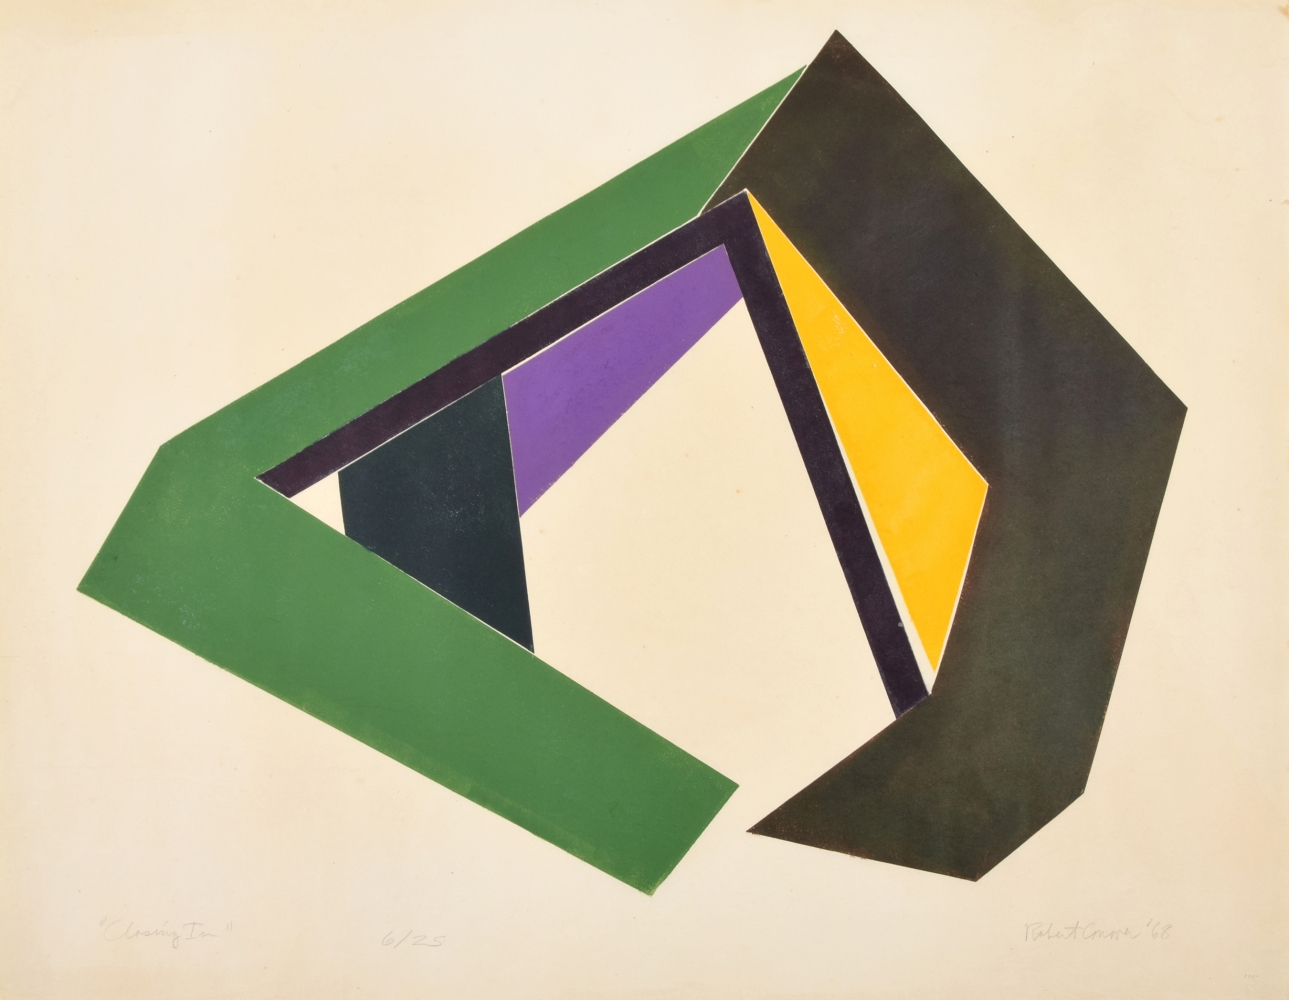 Robert Conover, Closing In, 1968, color screenprint on paper, 28.75 x 36.75 inches, Robert Conover for sale